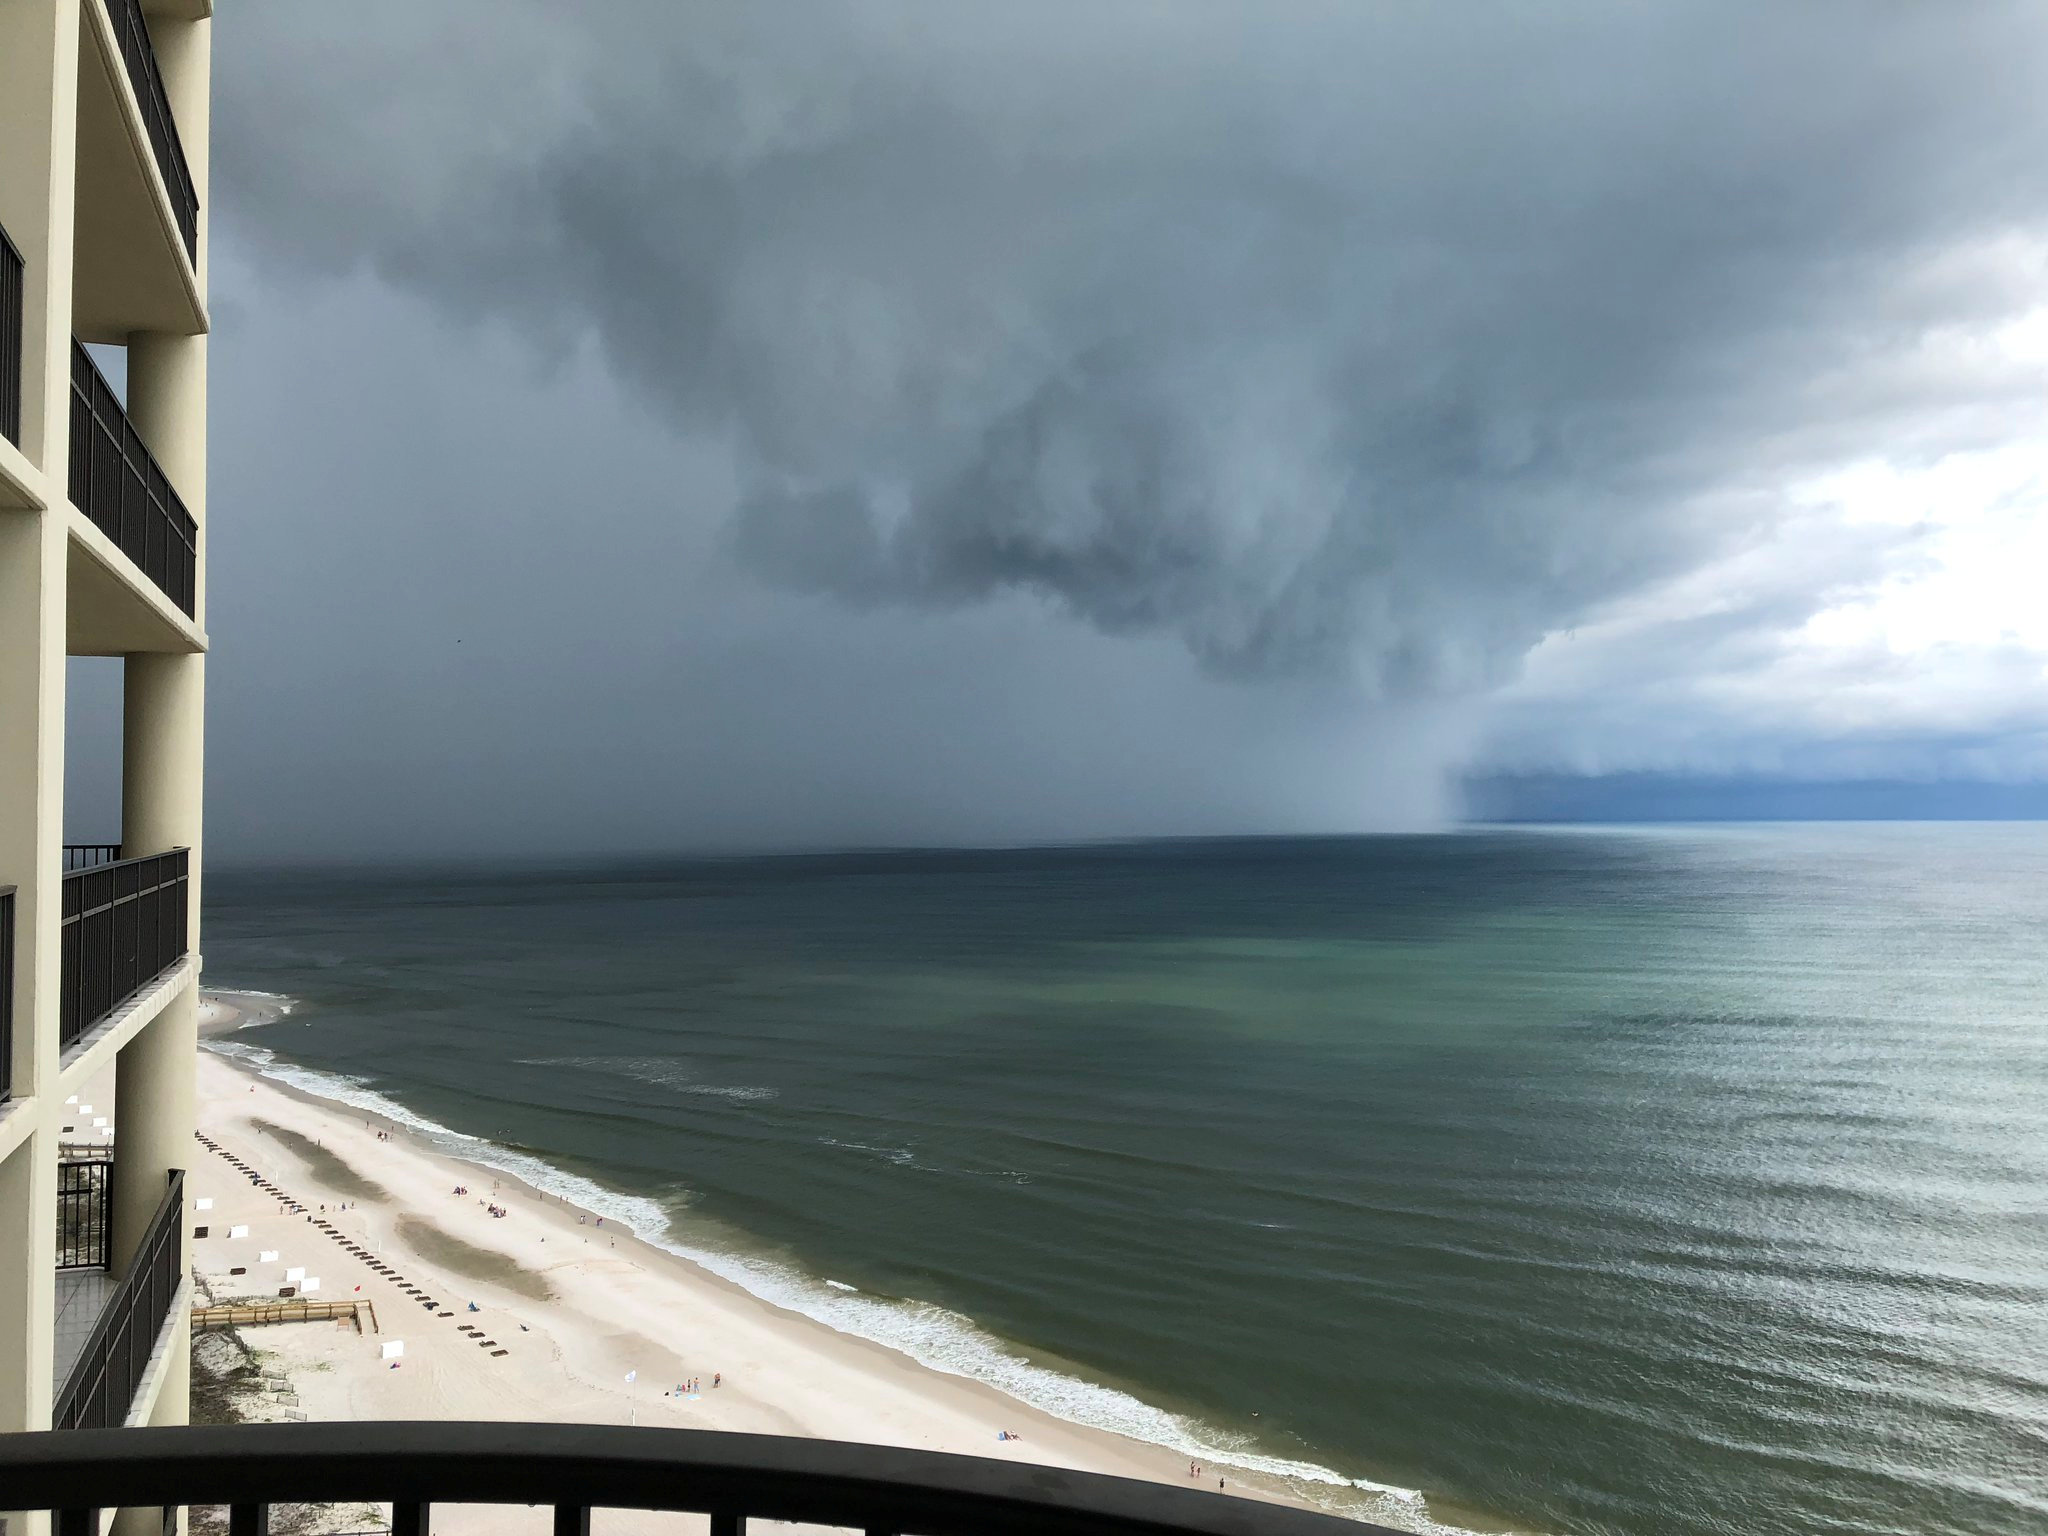 Subtropical Storm Alberto arrives at Orange Beach, Alabama, U.S., May 28, 2018, in this picture obtained from social media. David Green/@dsg_dukester/Twitter/via REUT